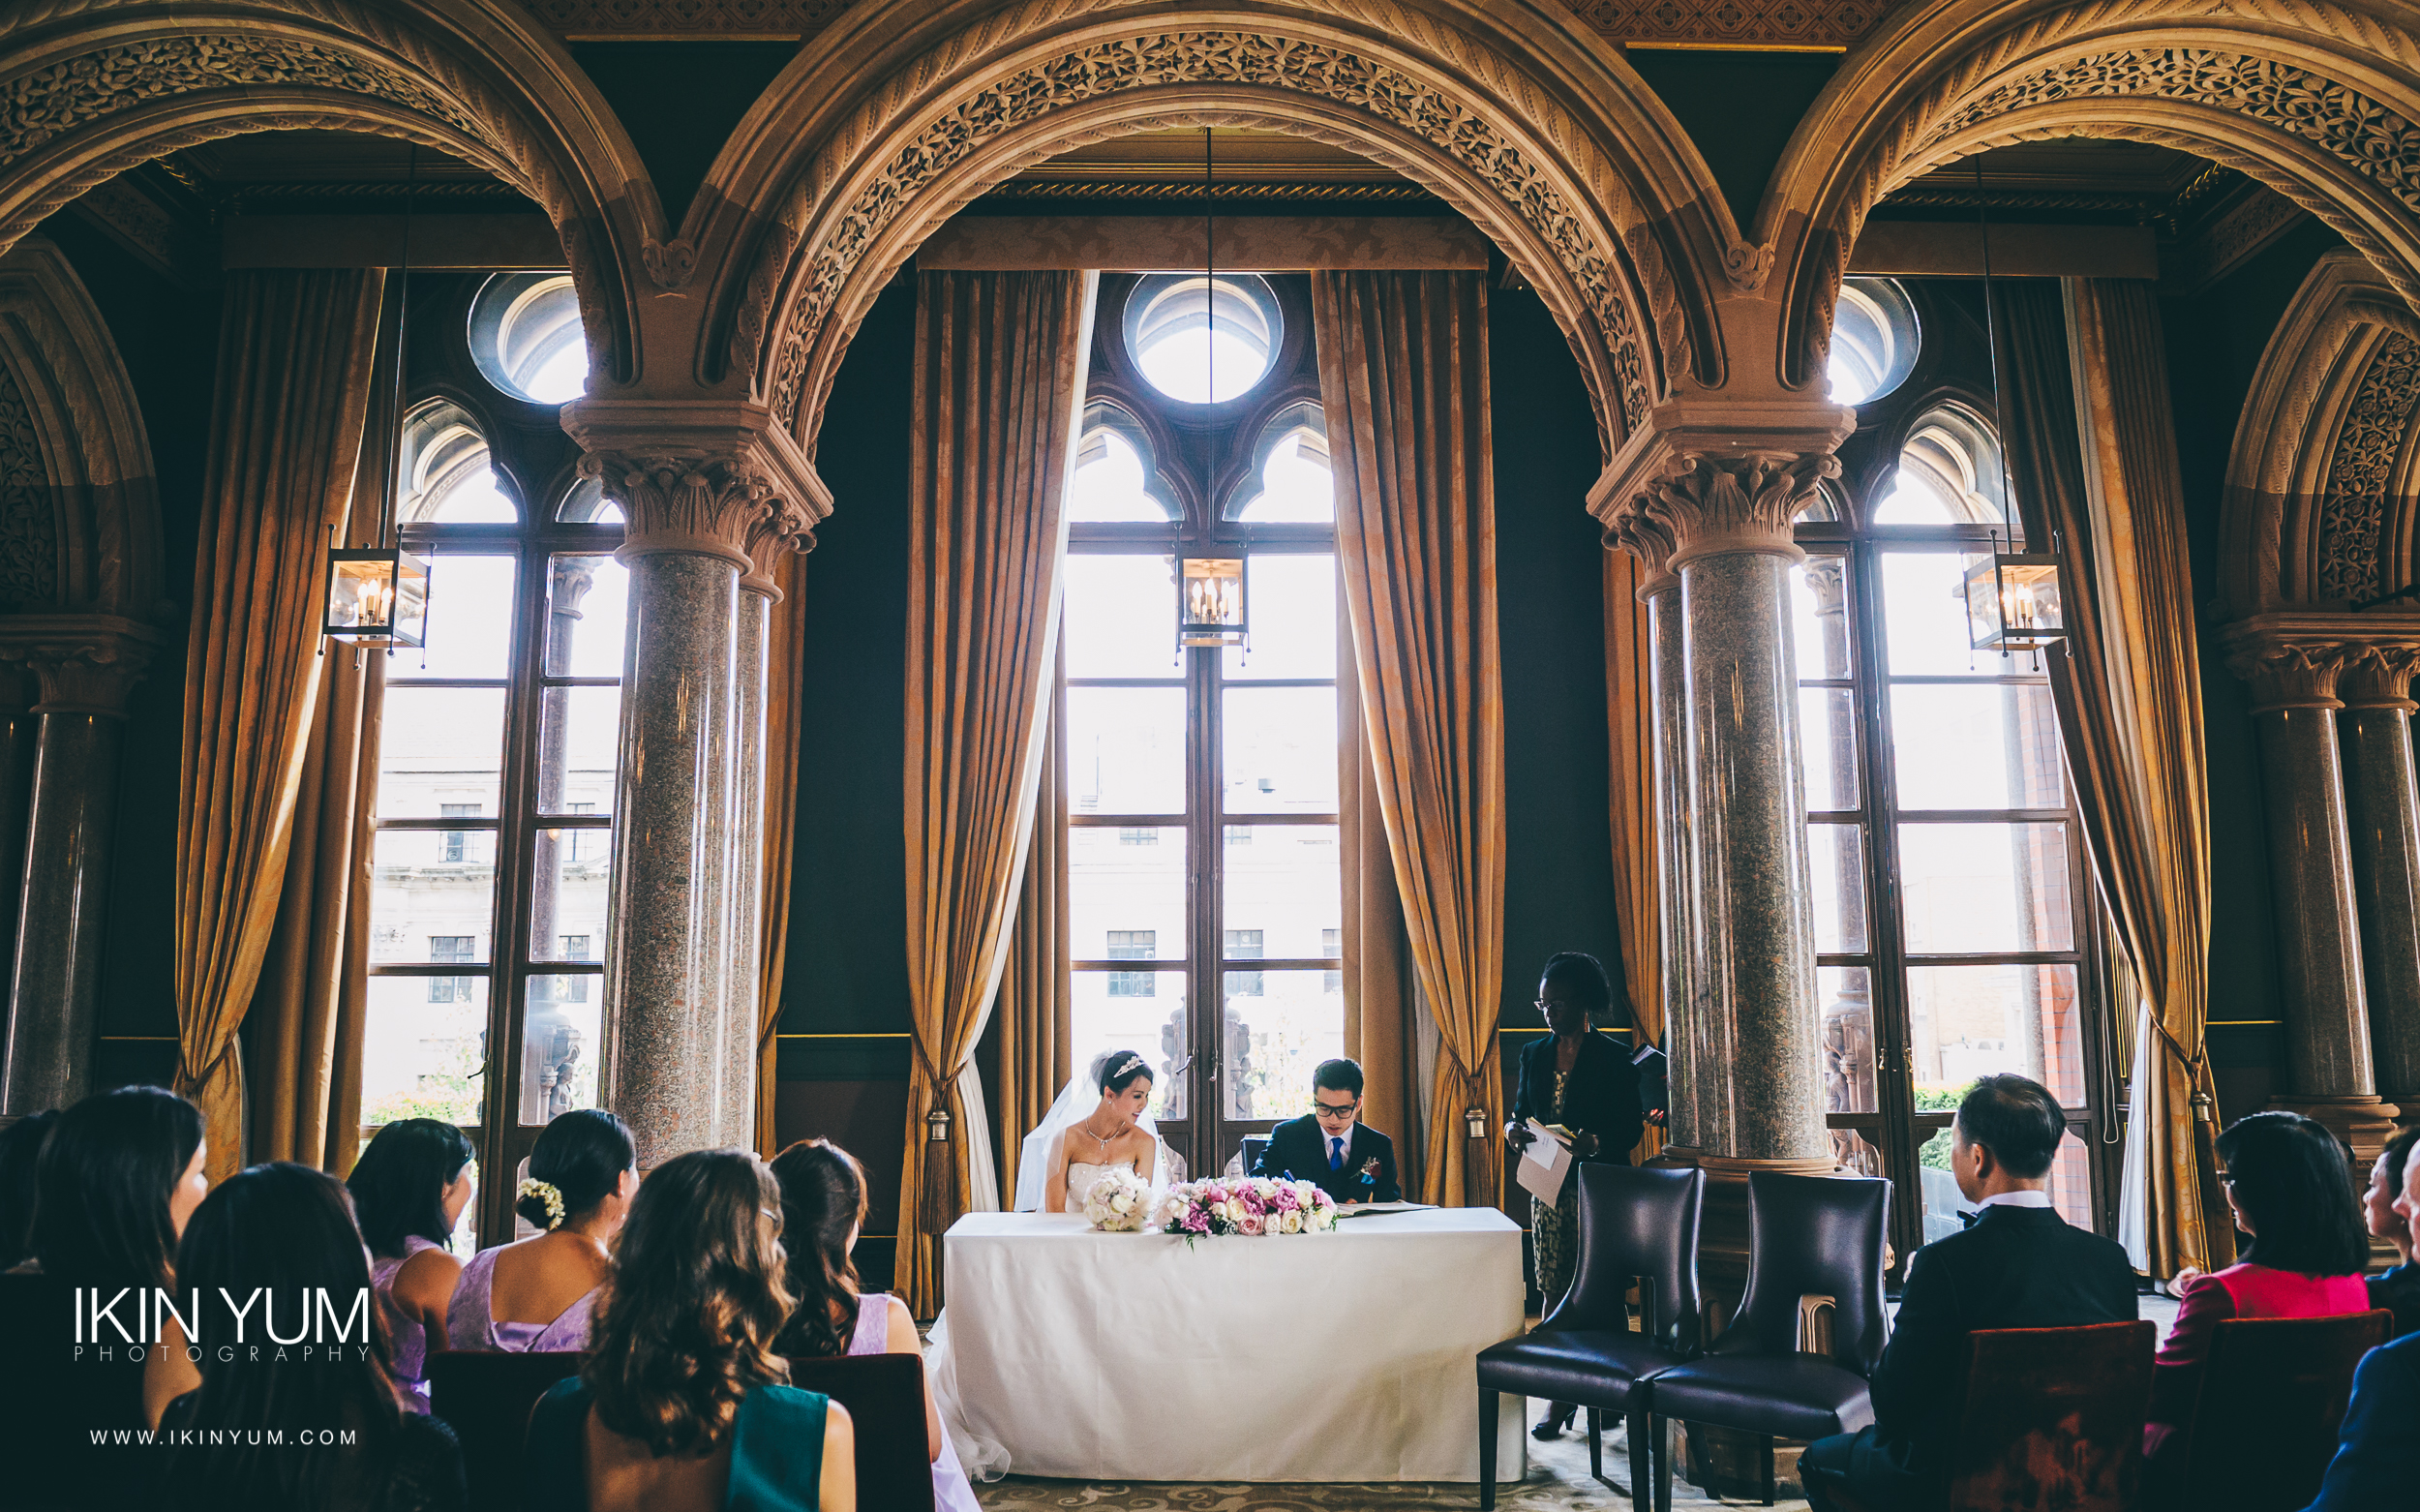 St Pancras Renaissance Hotel - Wedding - Ikin Yum Photography-103.jpg